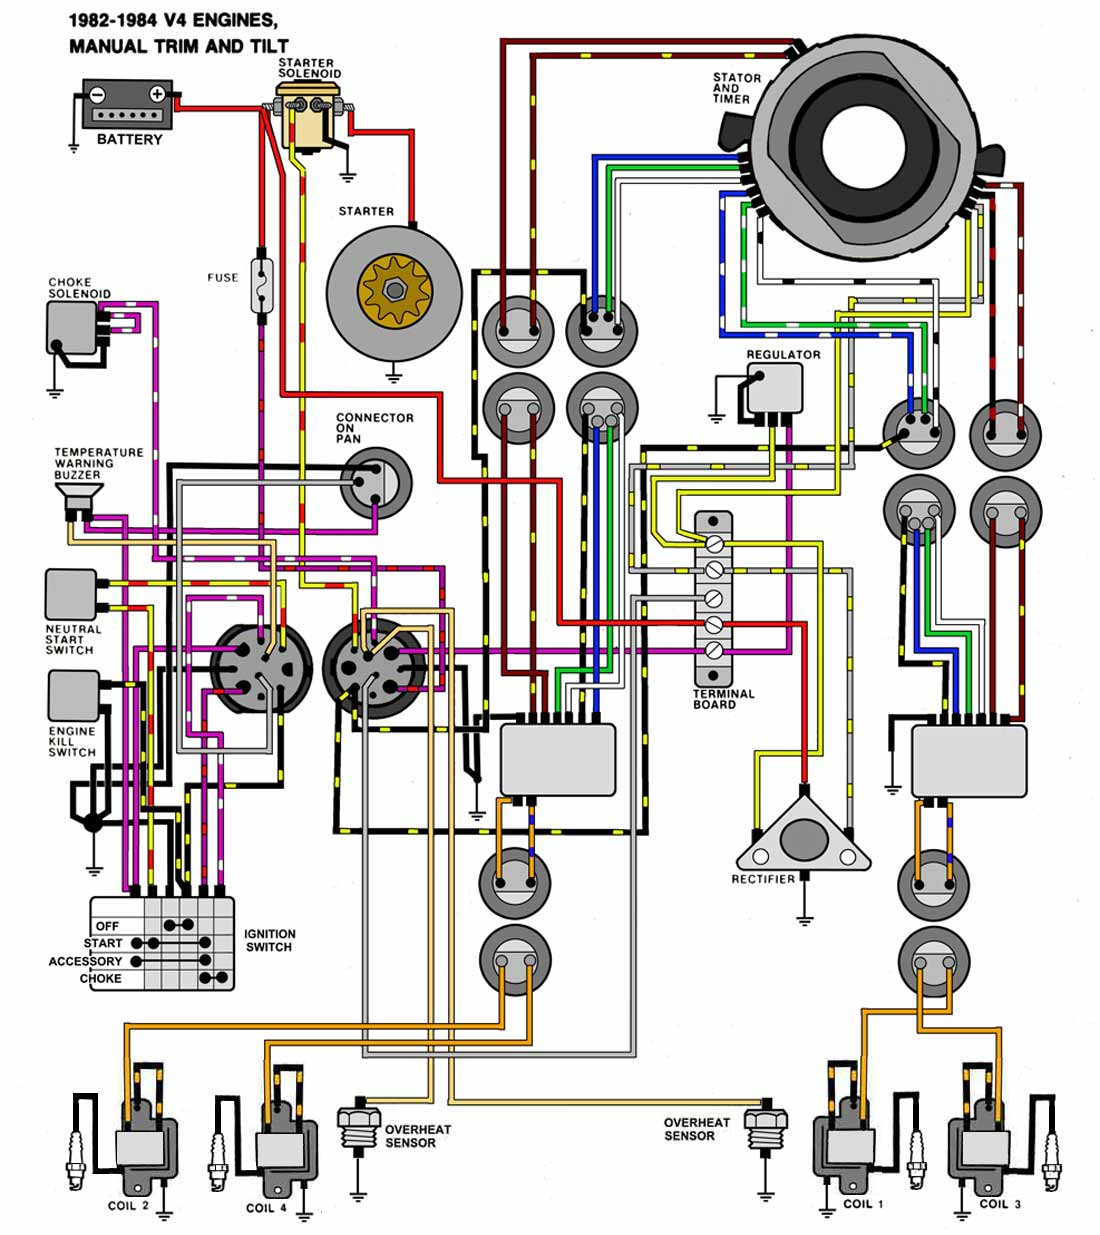 DIAGRAM] 1985 85 Hp Johnson Outboard Motor Wiring Diagram FULL Version HD  Quality Wiring Diagram - ECHOBASEWIRING.DN-MAG.FRDN-MAG